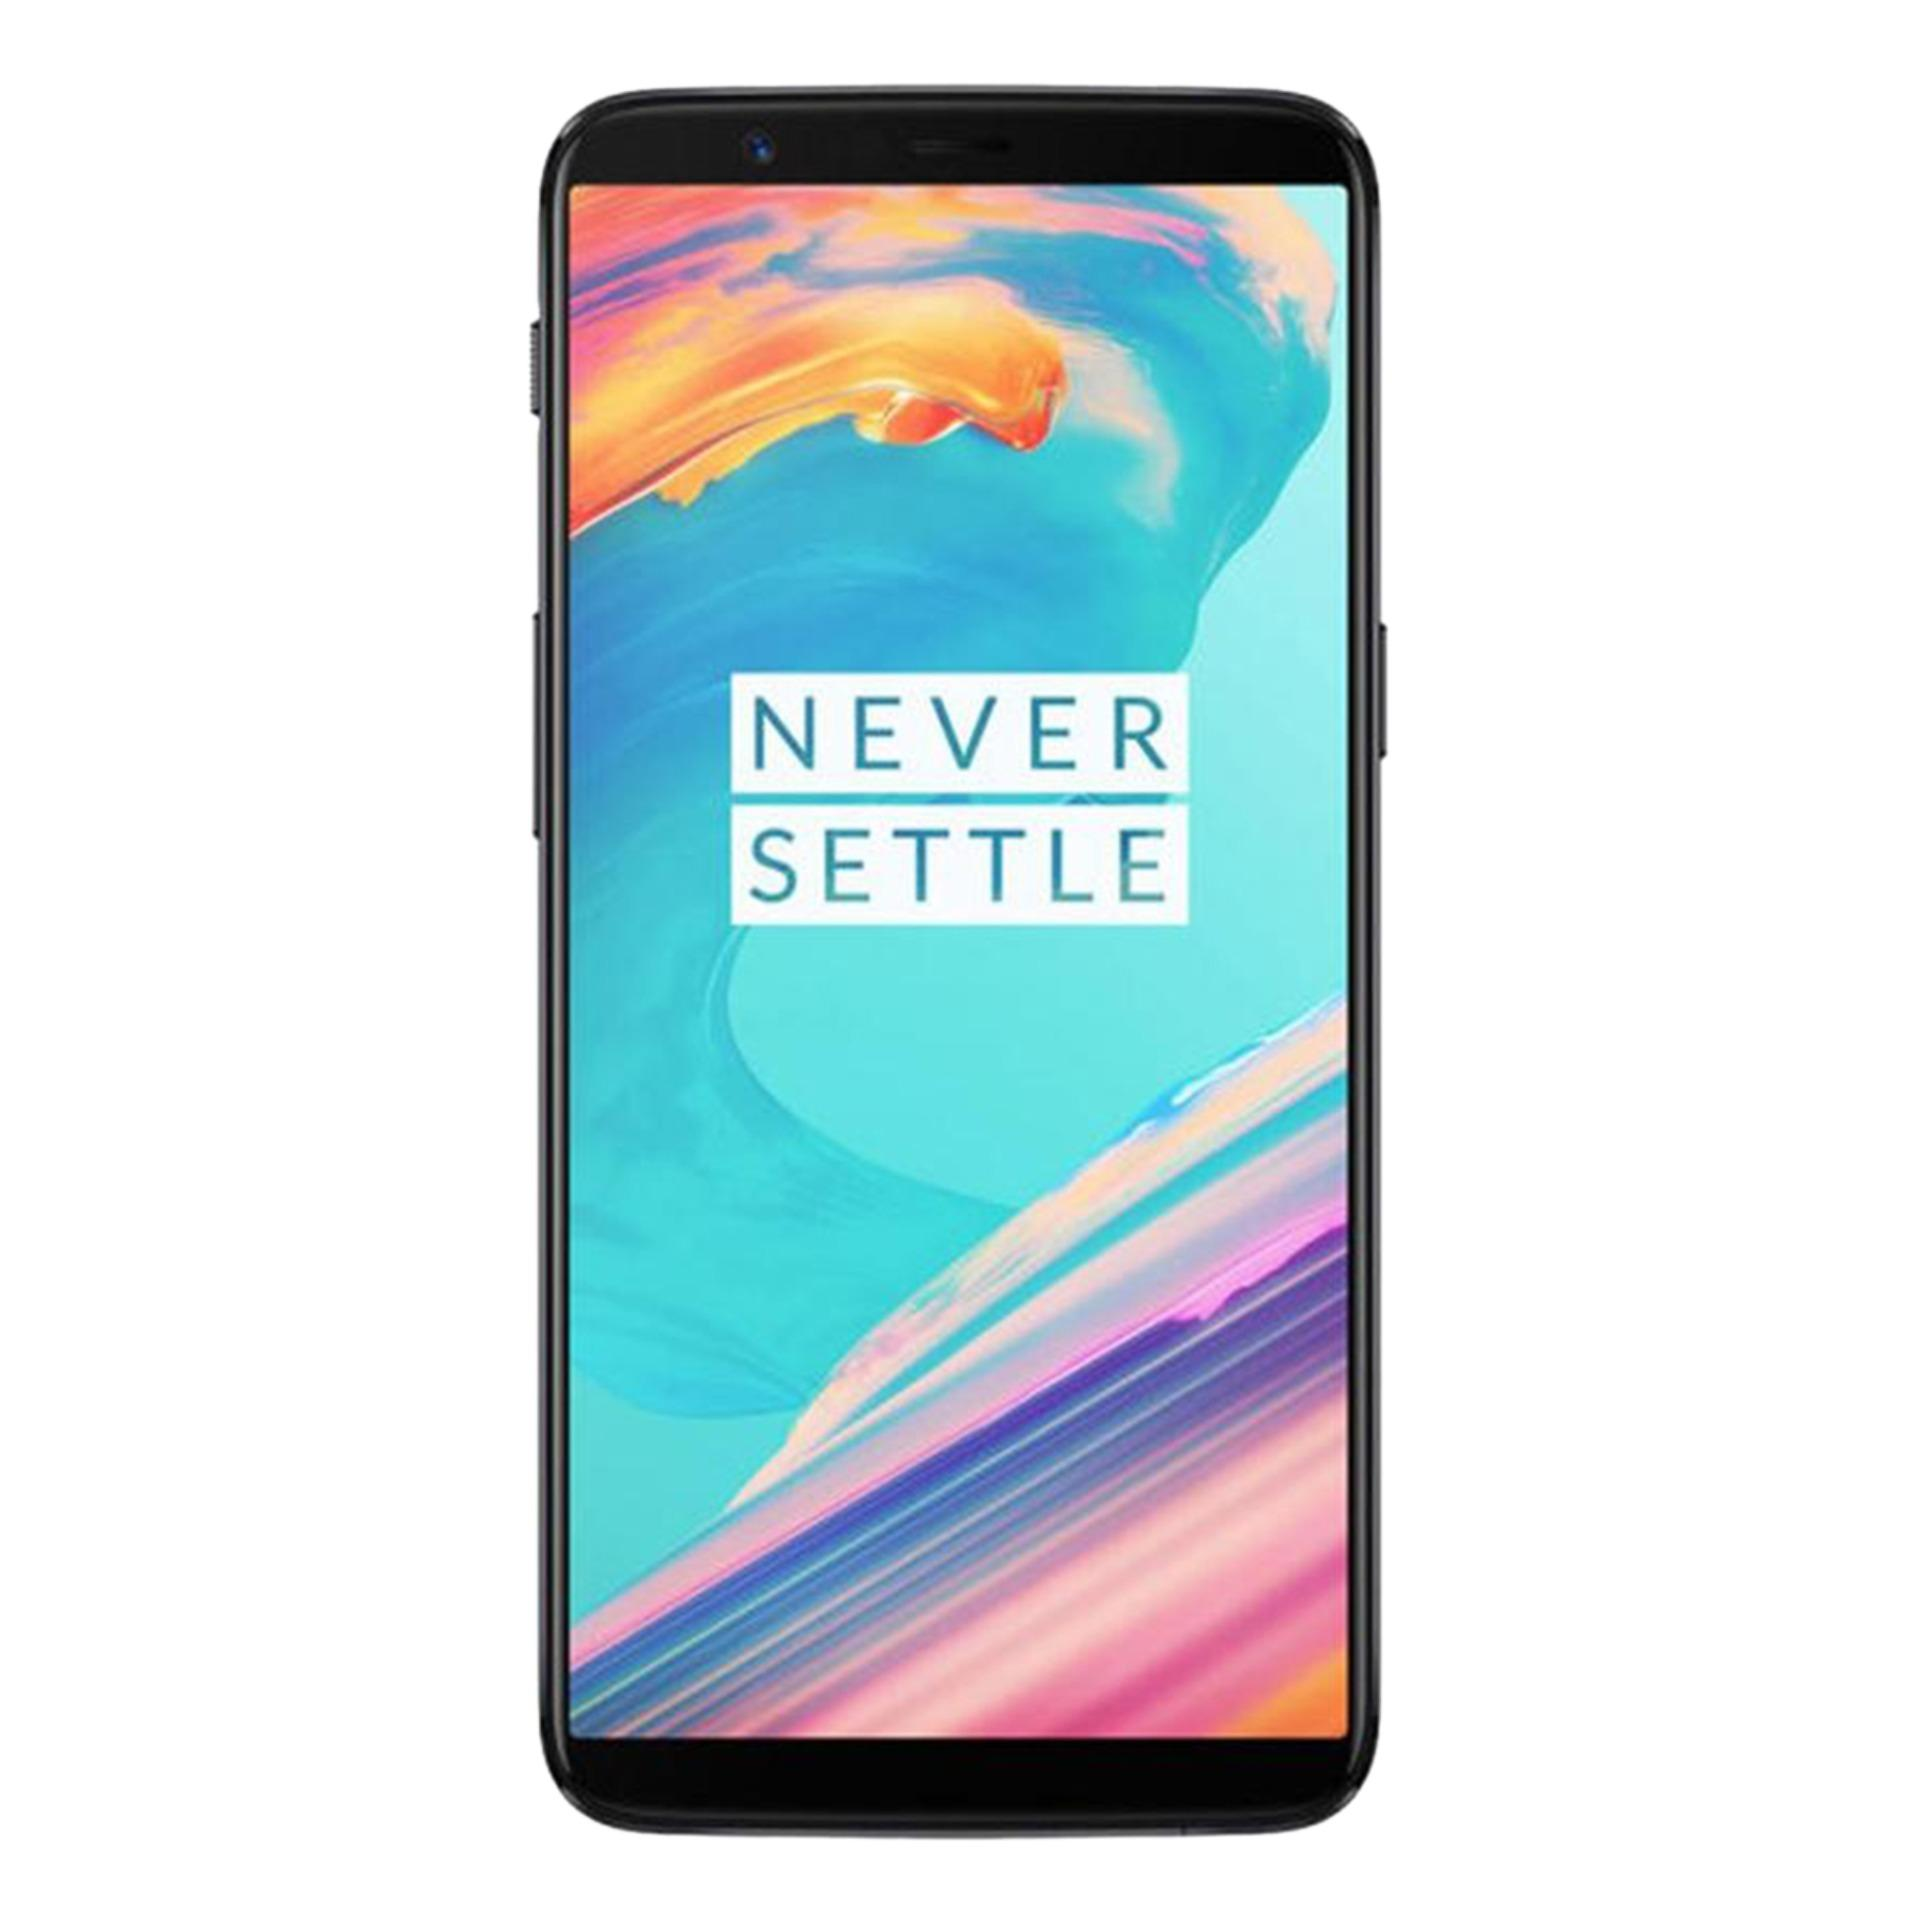 Buy Oneplus Mobiles At Best Prices Online In Bangladesh 5 Smartphone 64gb 6gb 5t 601 Ram Rom 20mp Camera